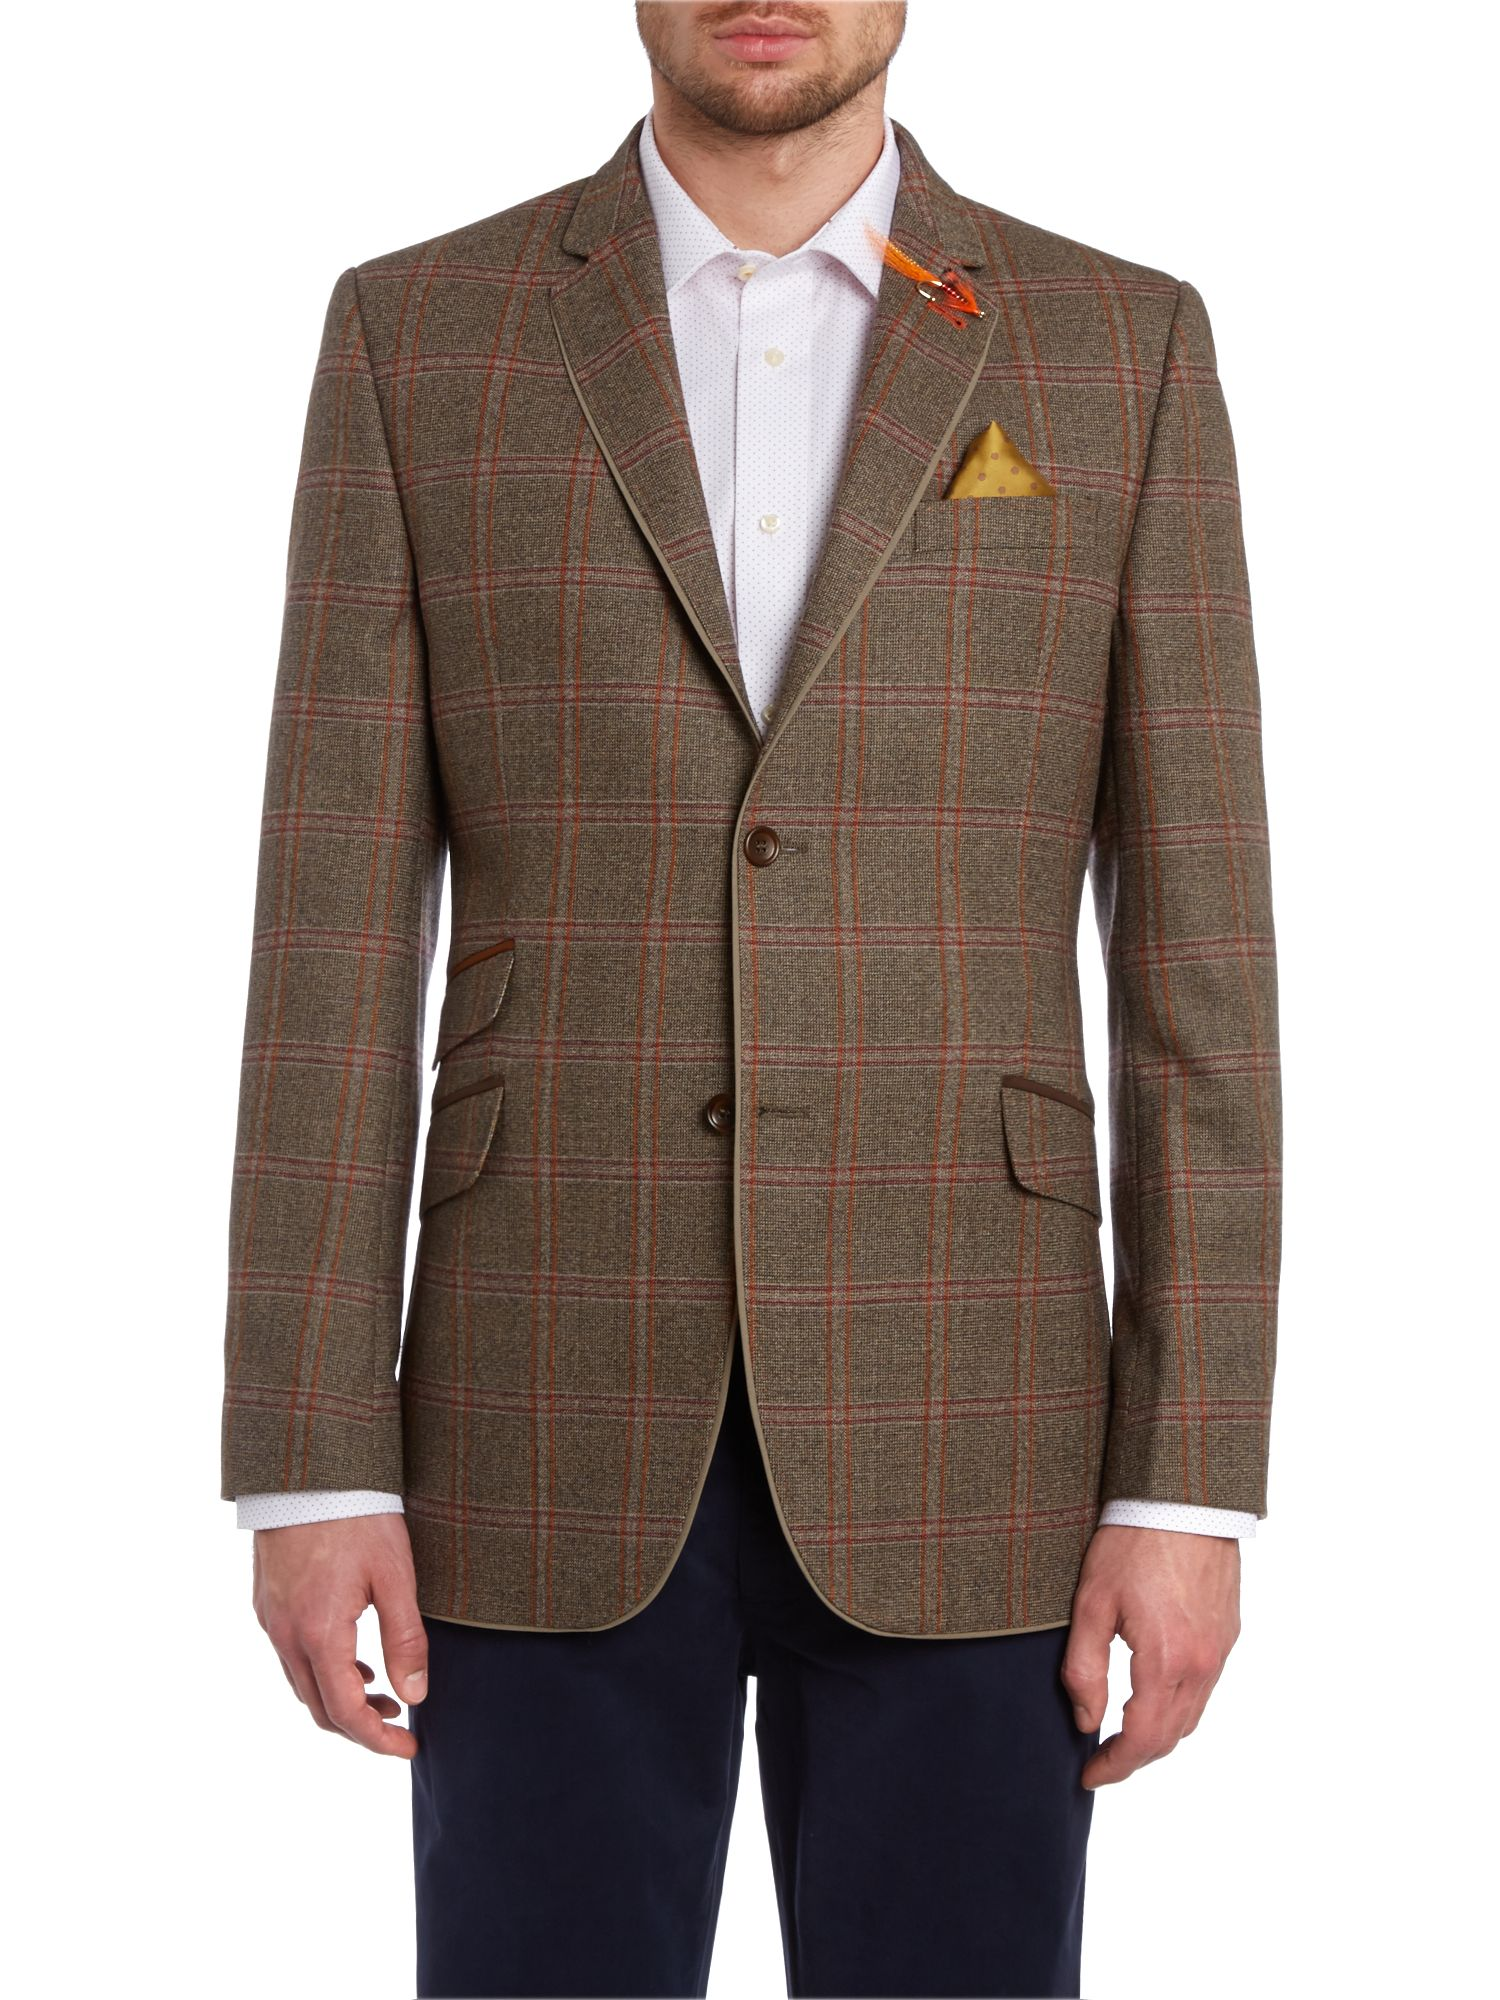 Weyling regular fit tweed textured check jacket